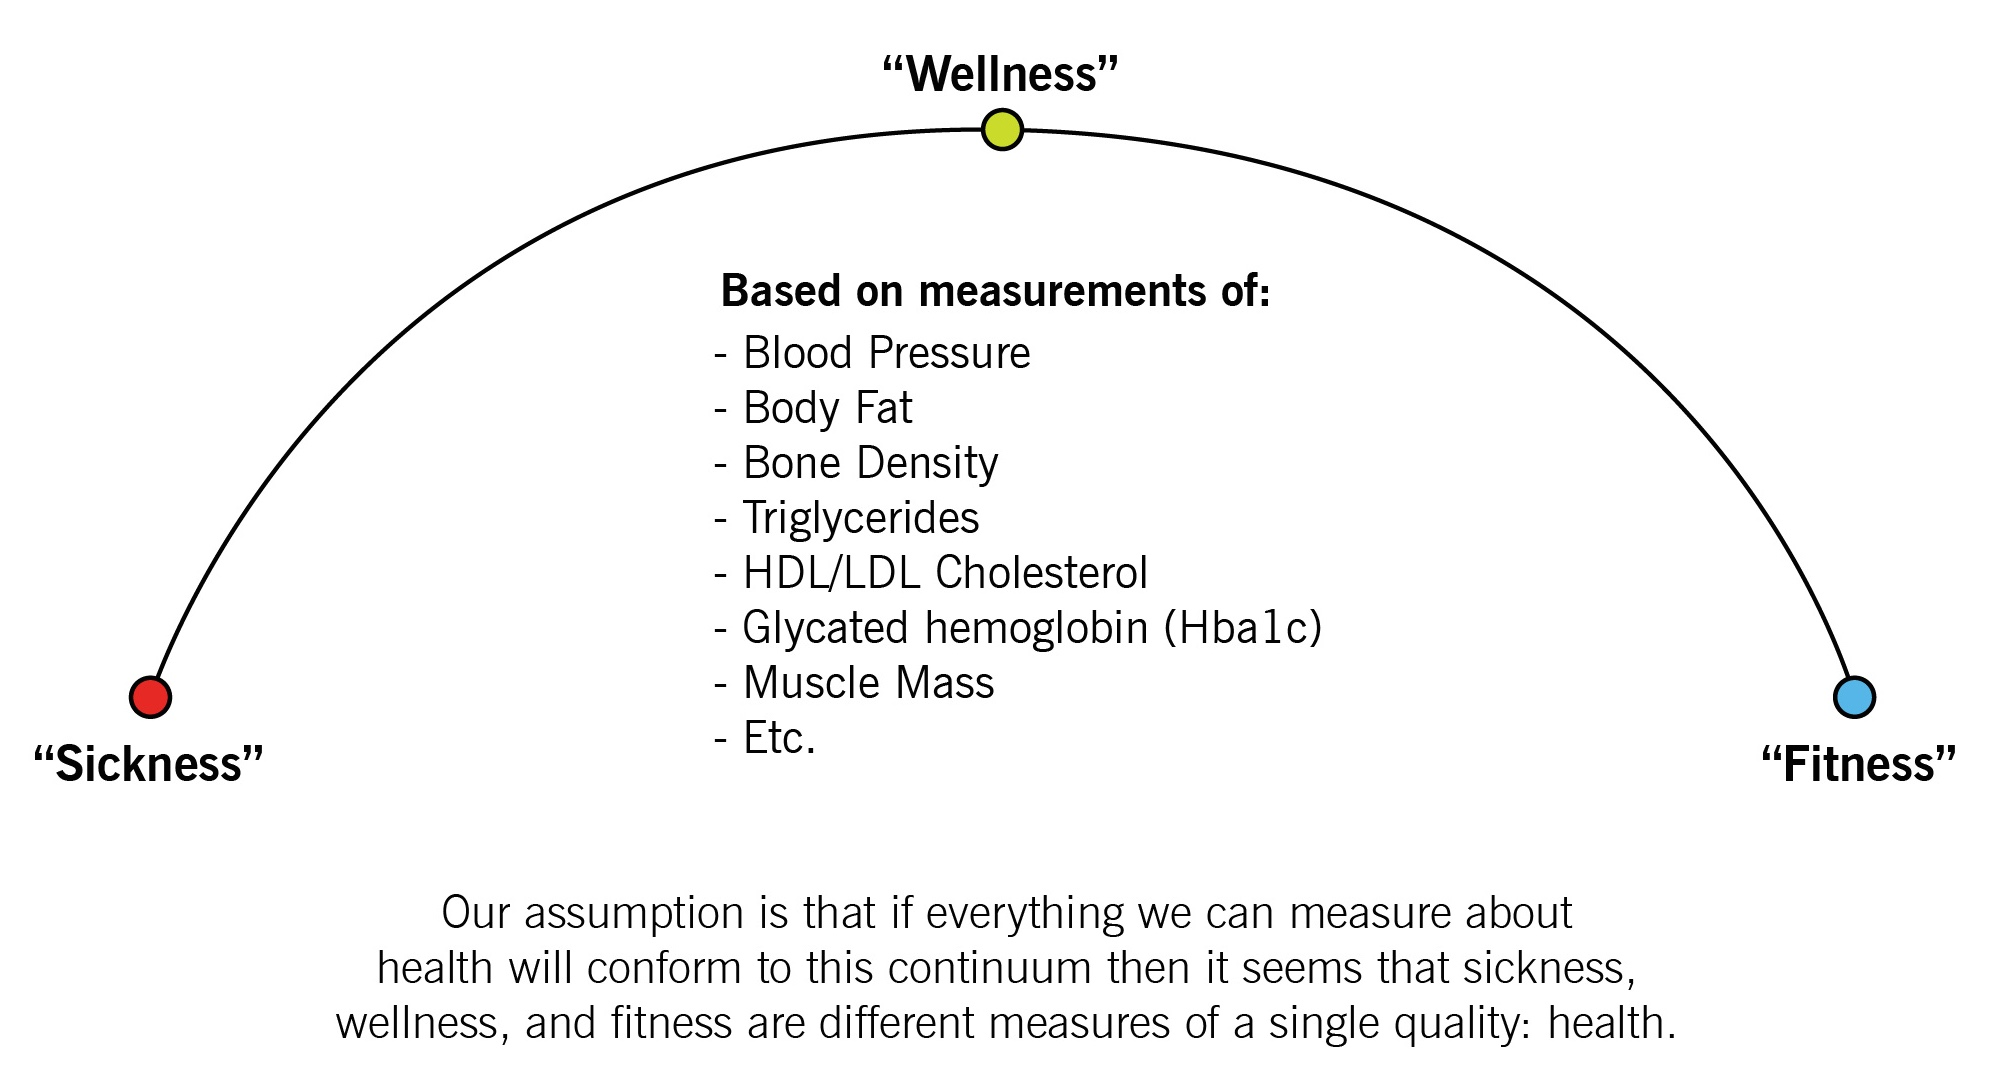 Image result for crossfit sickness wellness fitness continuum